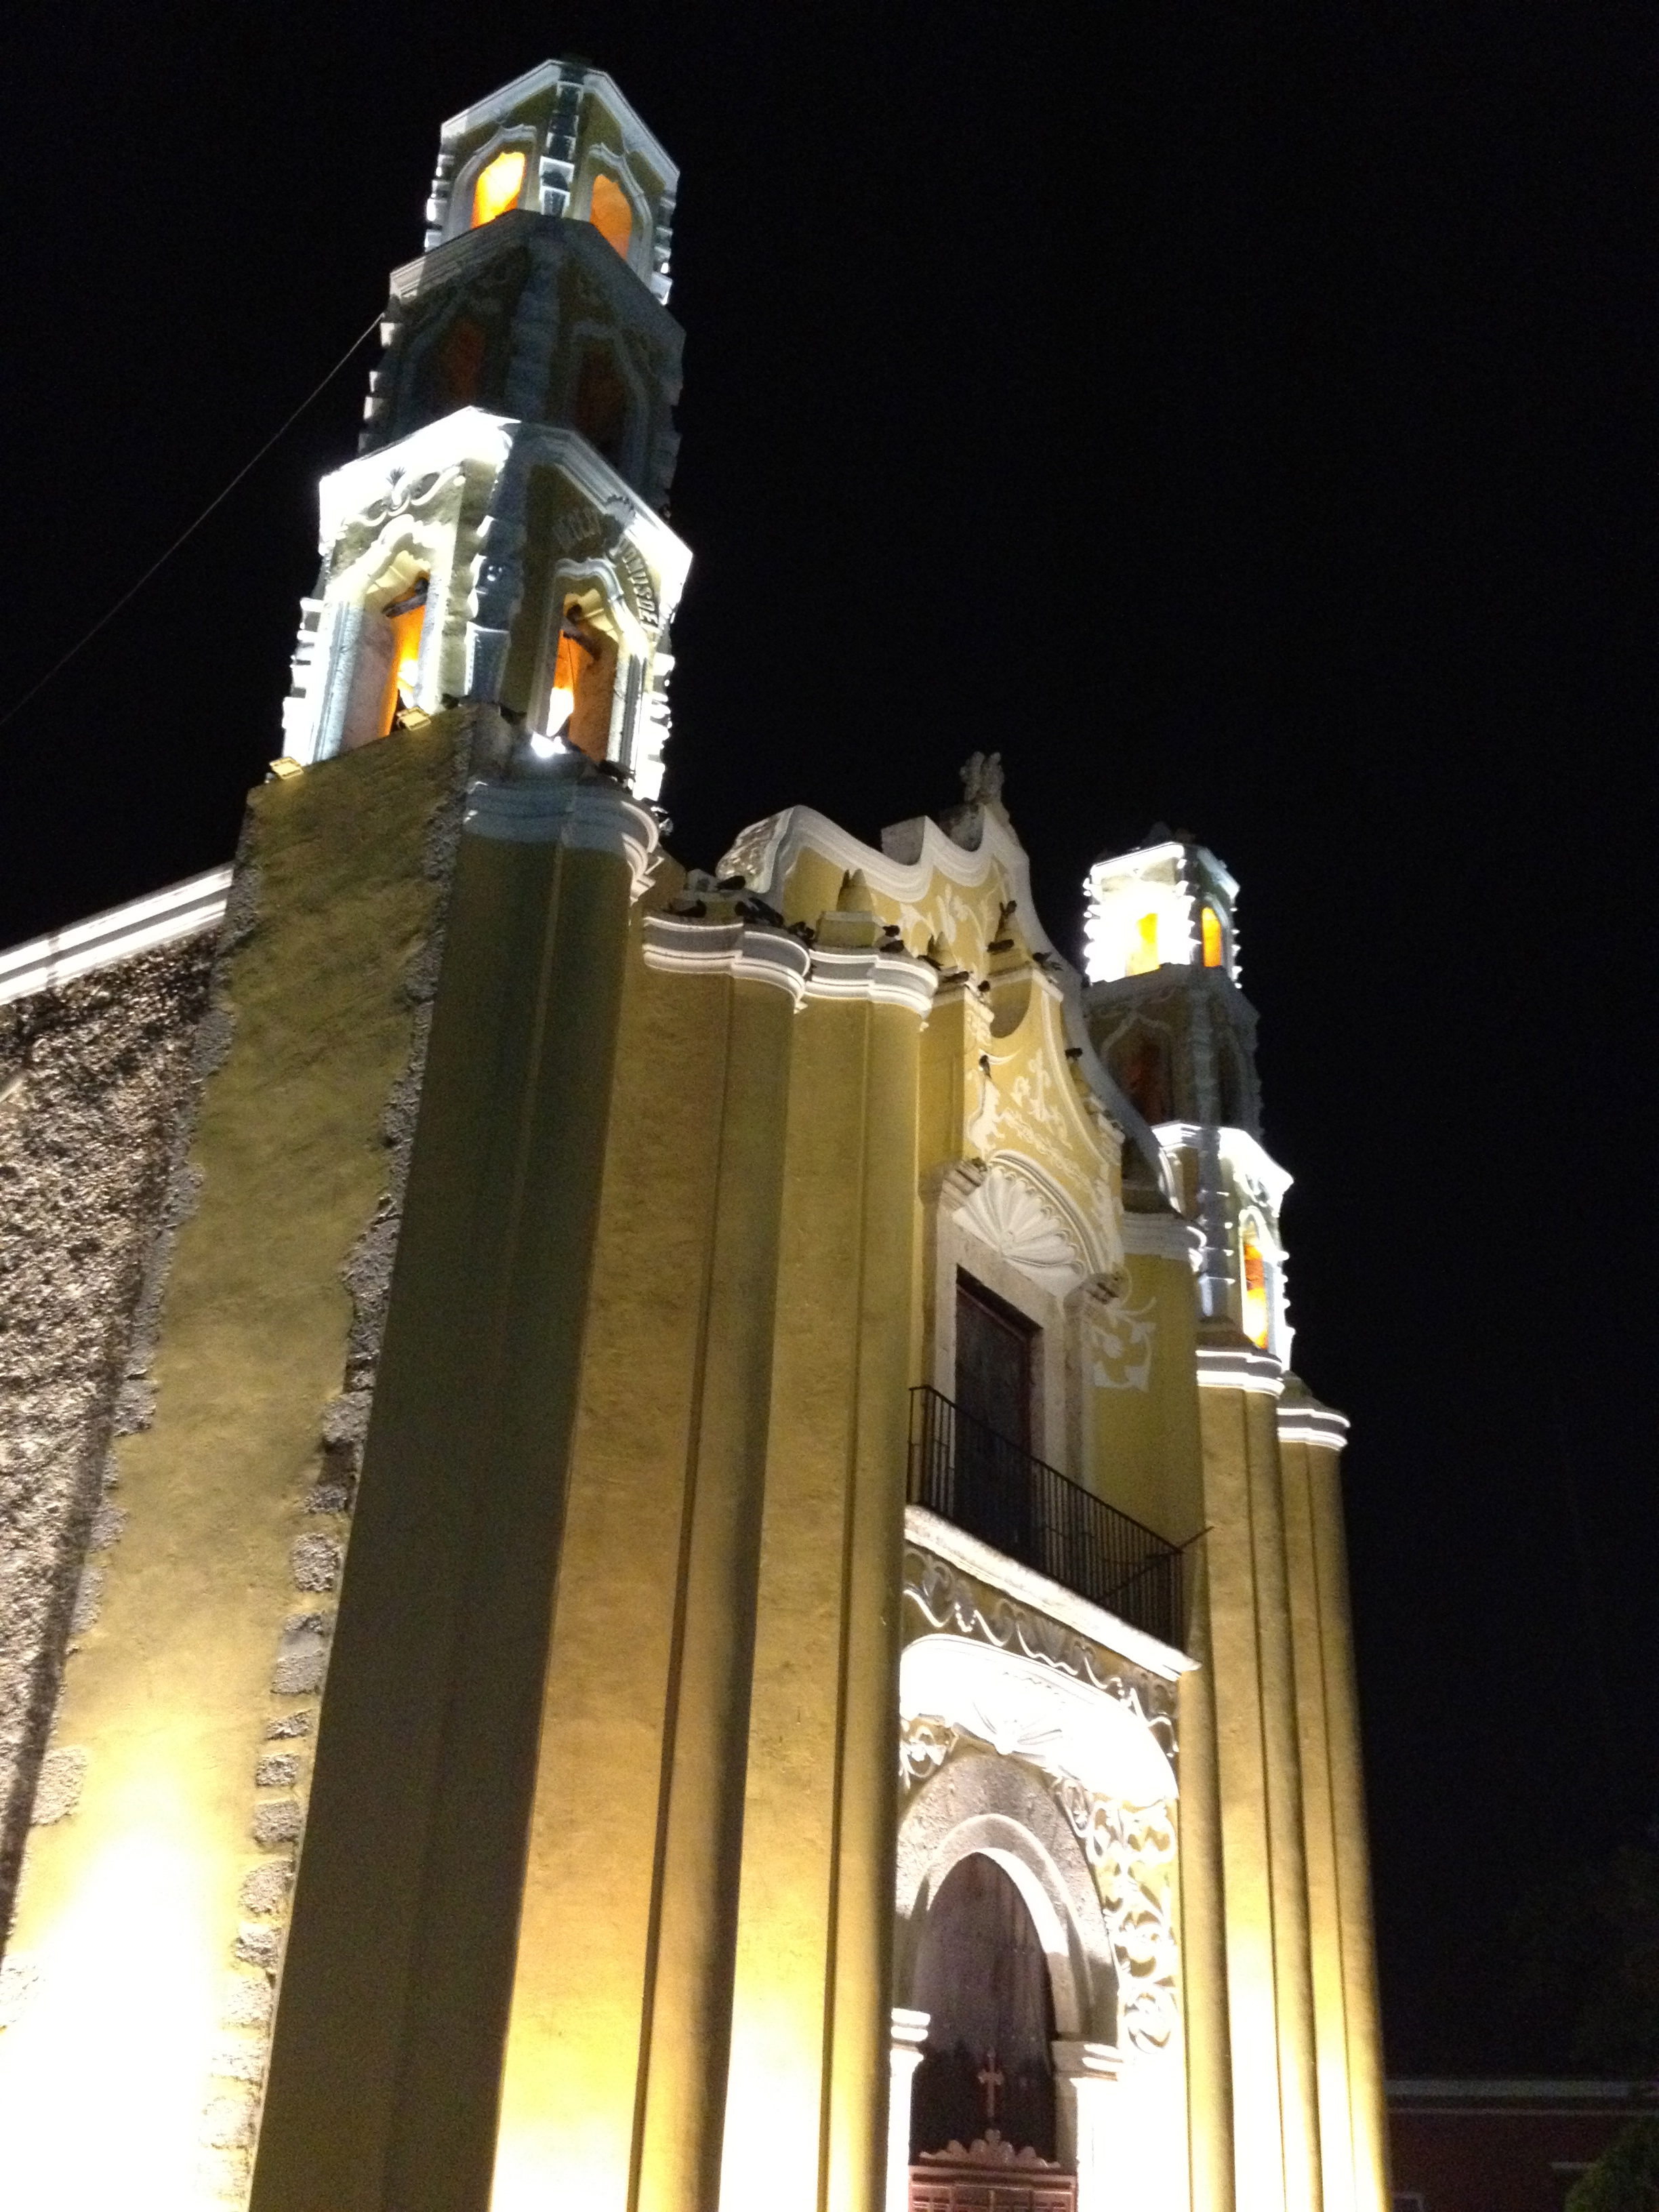 Illuminated Church in Merida